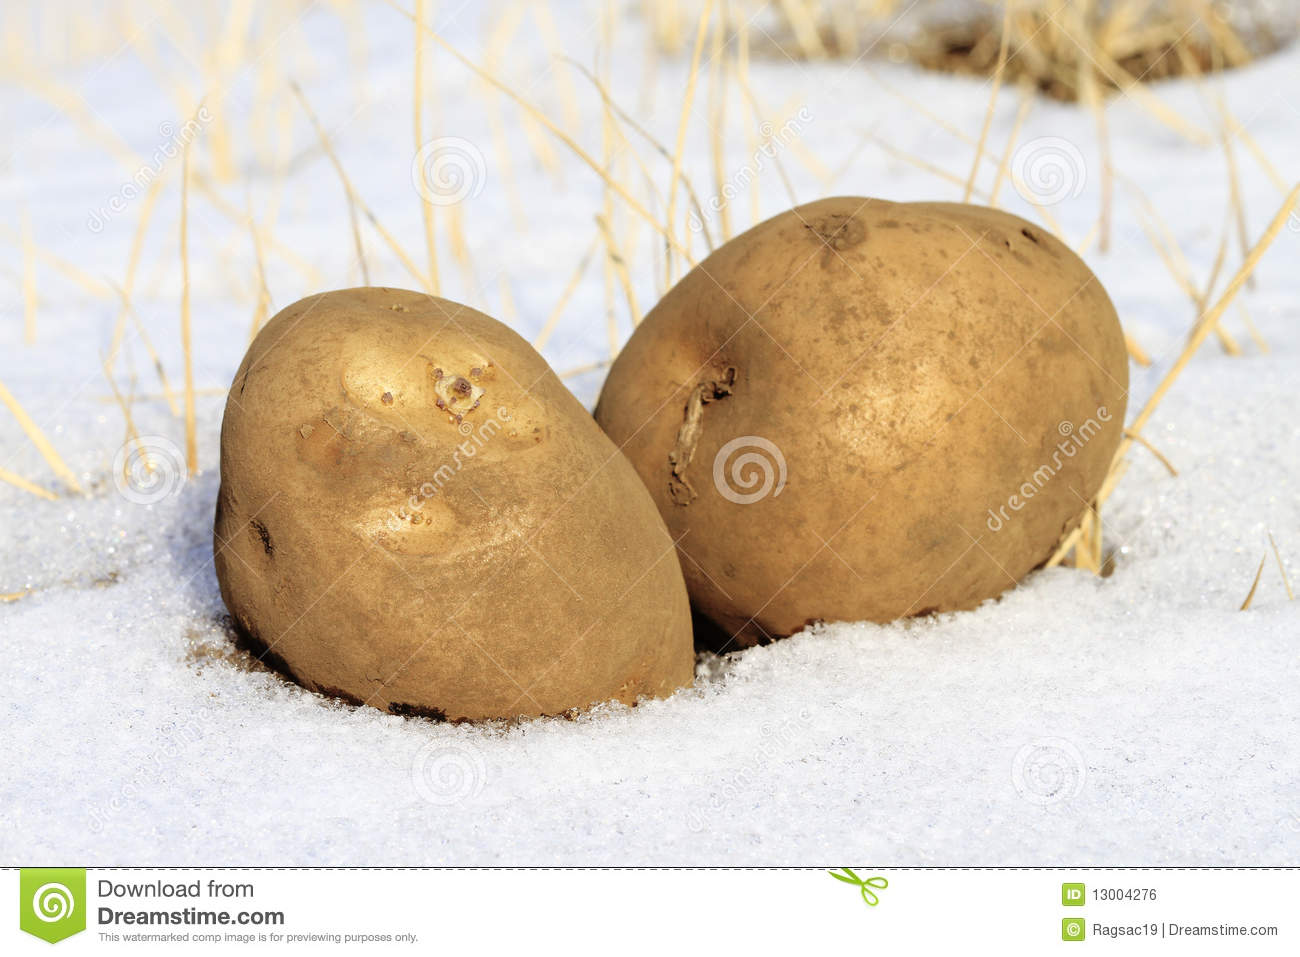 Cold Potato Royalty Free Stock Image - Image: 13004276